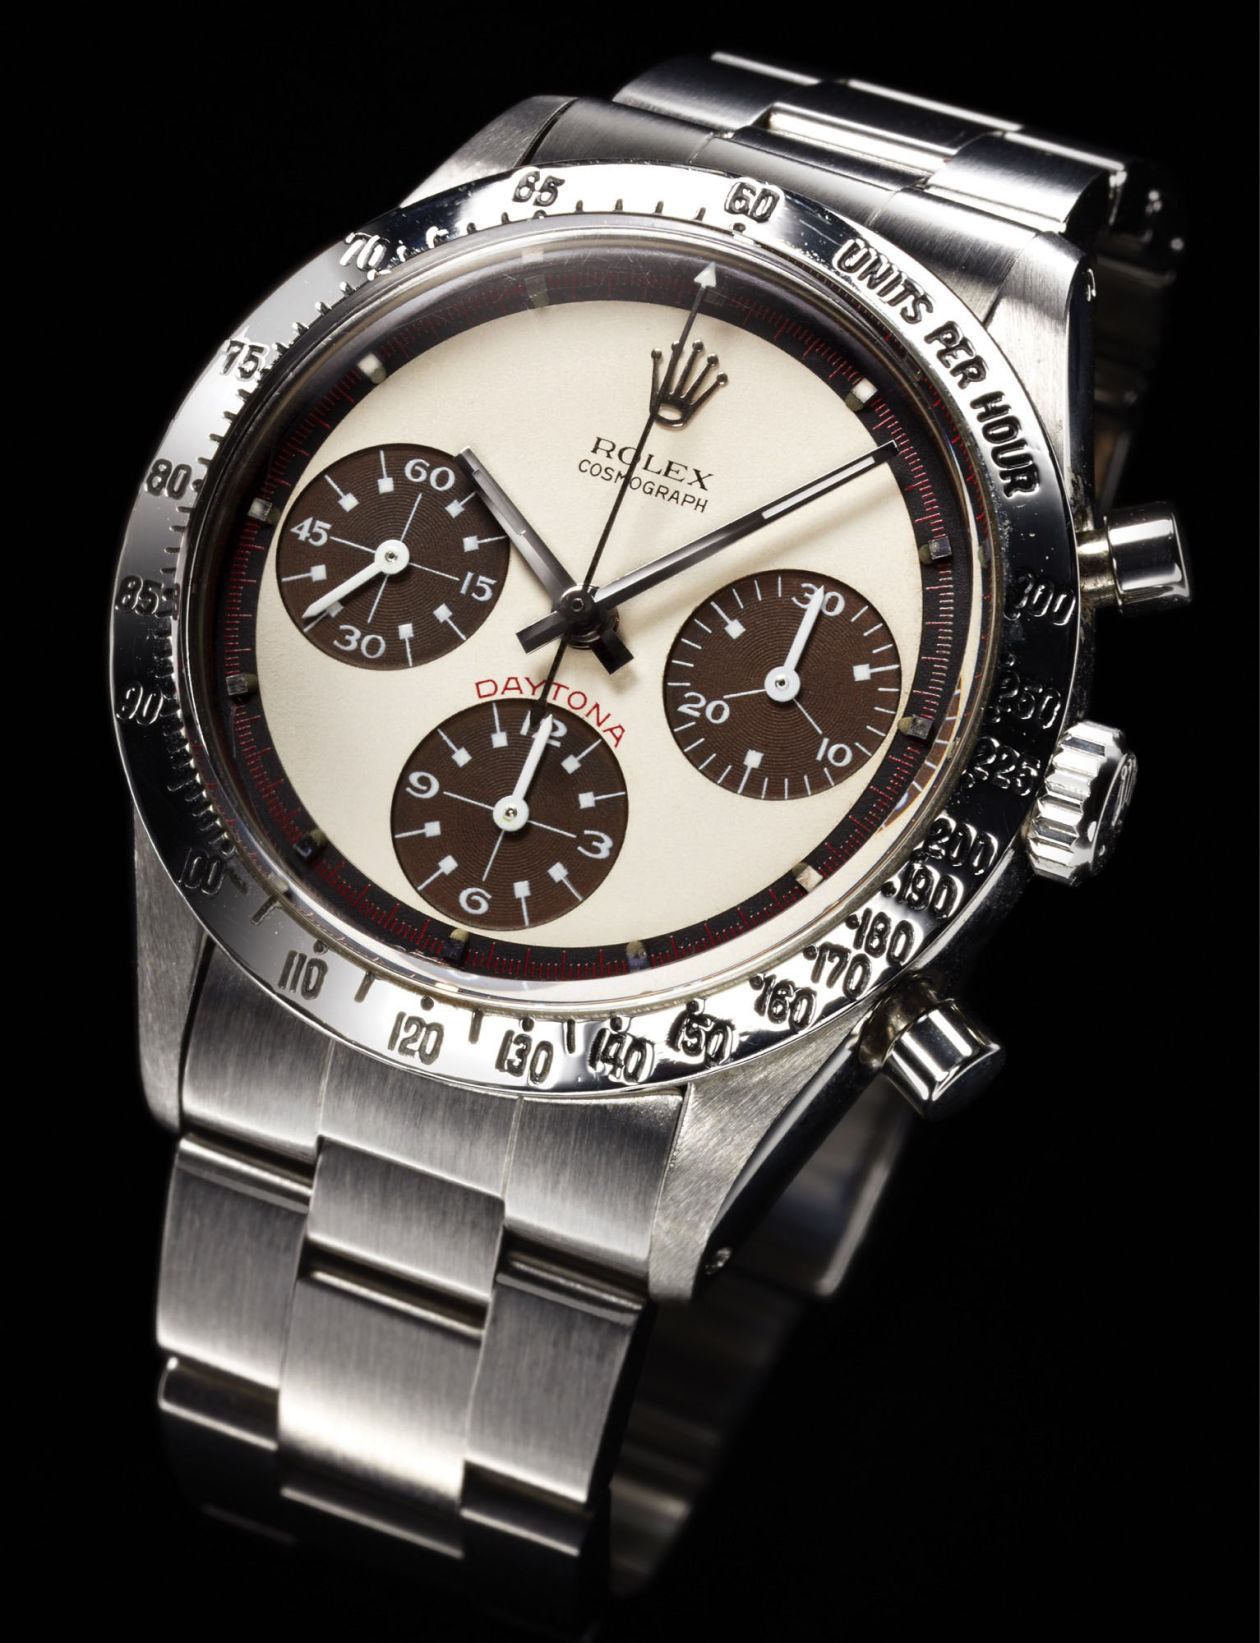 Watch There's a 1965 Rolex Paul Newman Daytona For Sale on eBay Right Now (Yours for a Cool 325,000) video